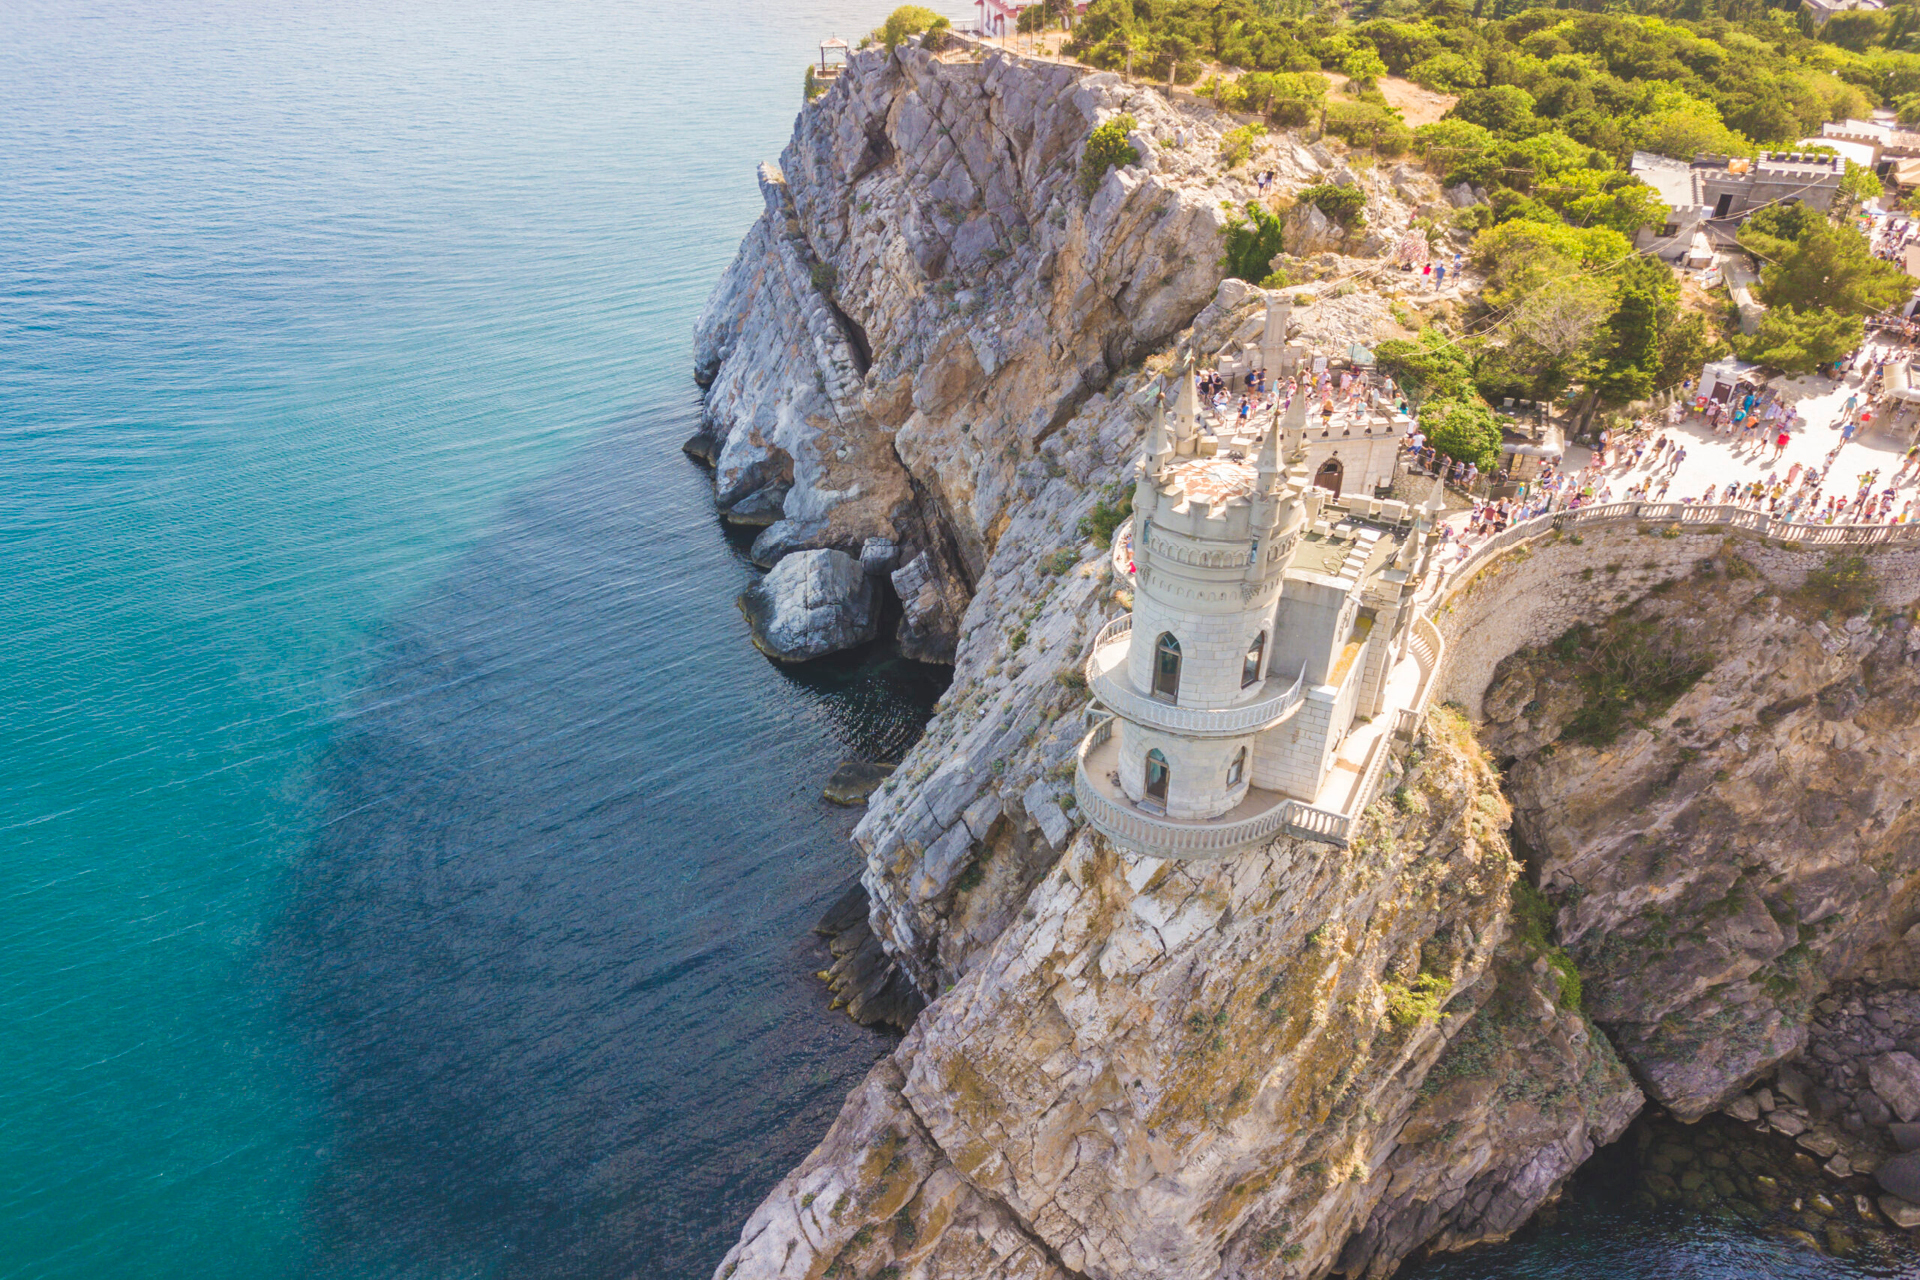 An aerial view of a beautiful castle on the top of a cliff and of the sea